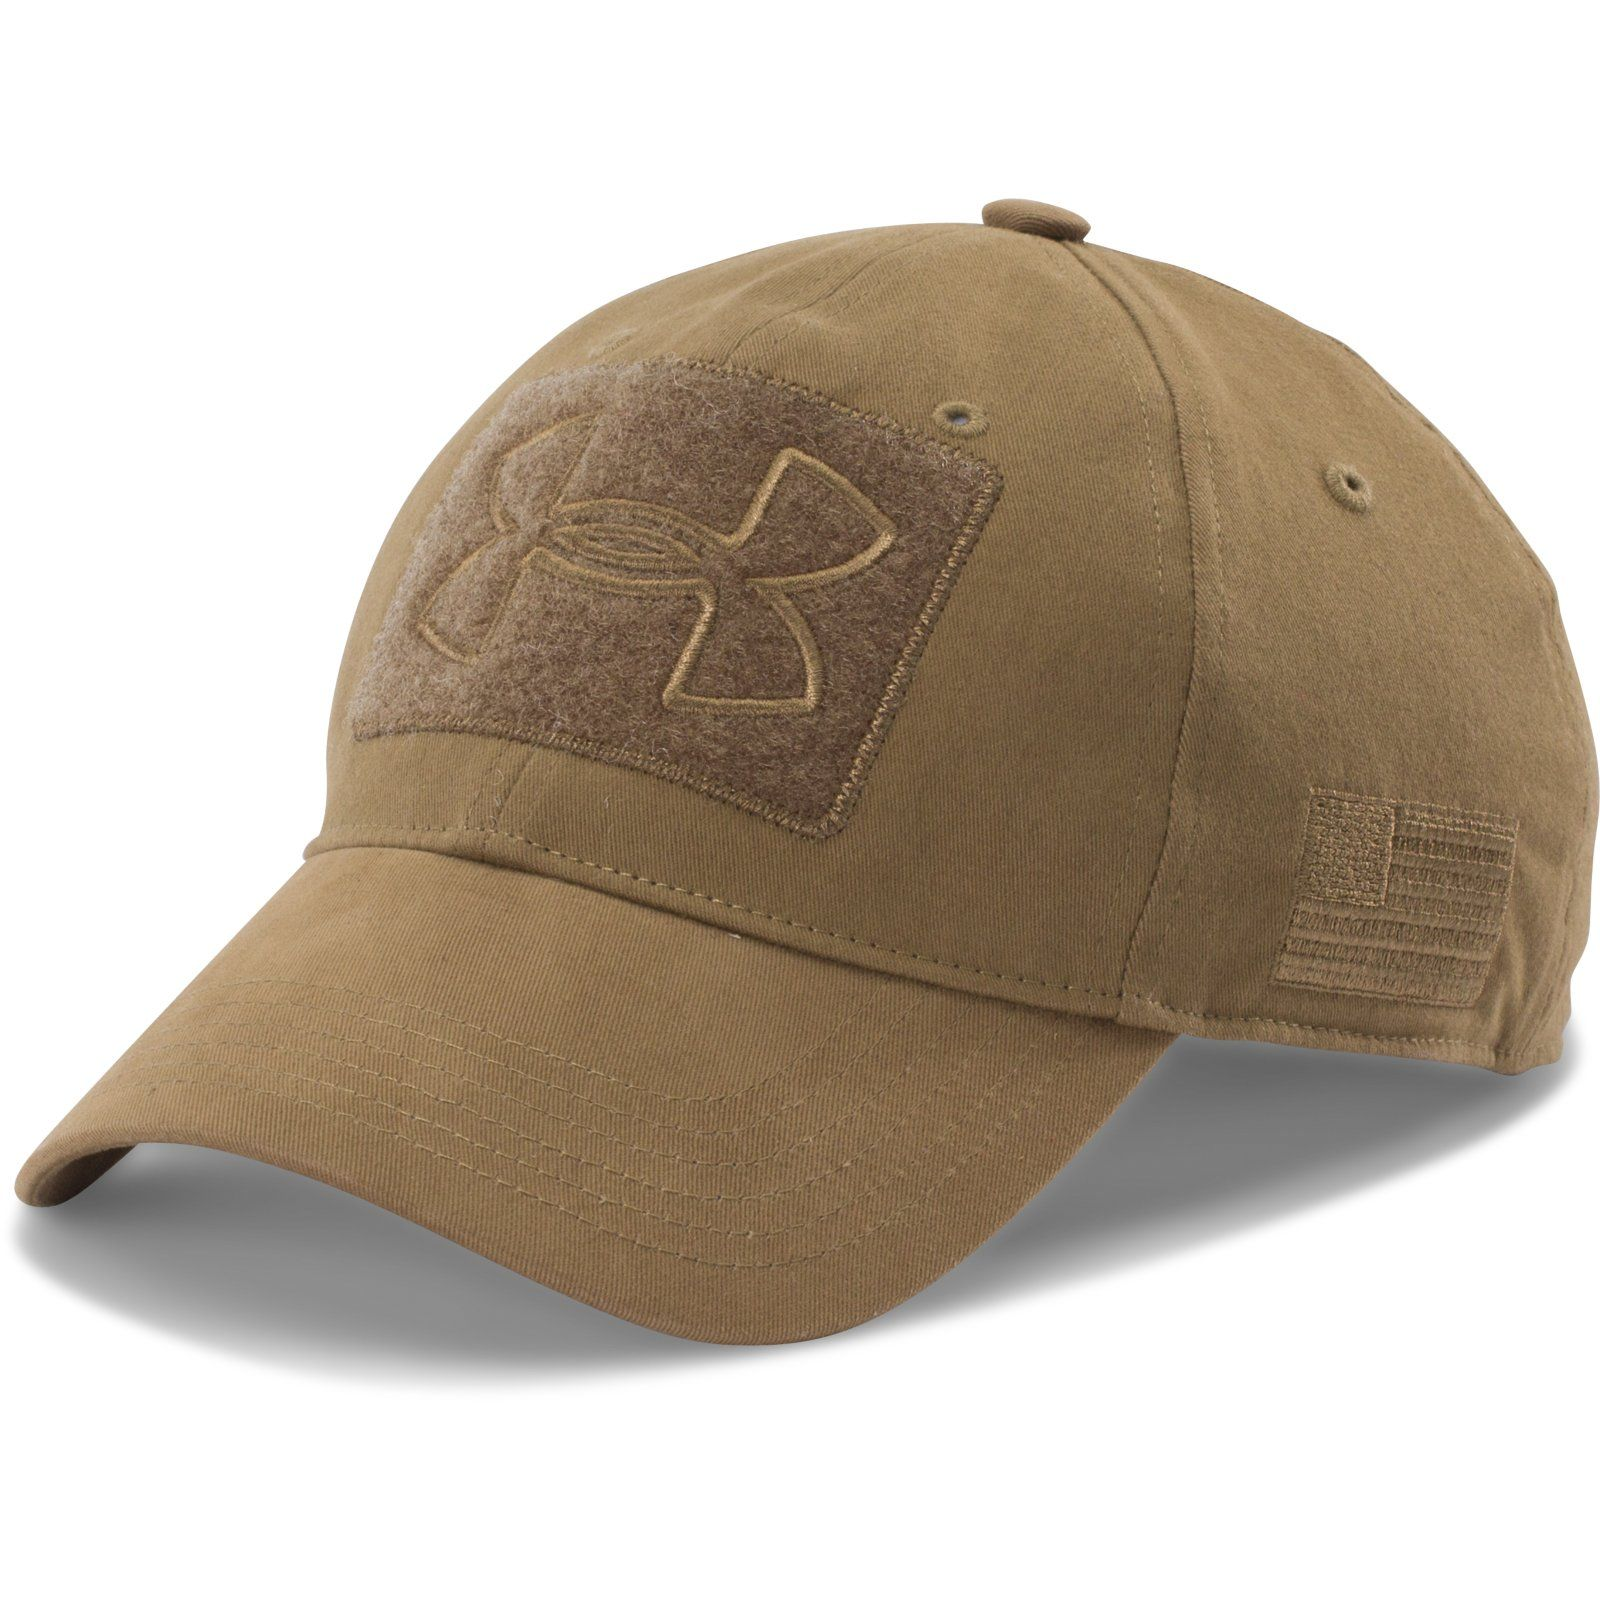 99a0c662baa Under Armour Tactical Patch Hat - Under Armour - Streicher s